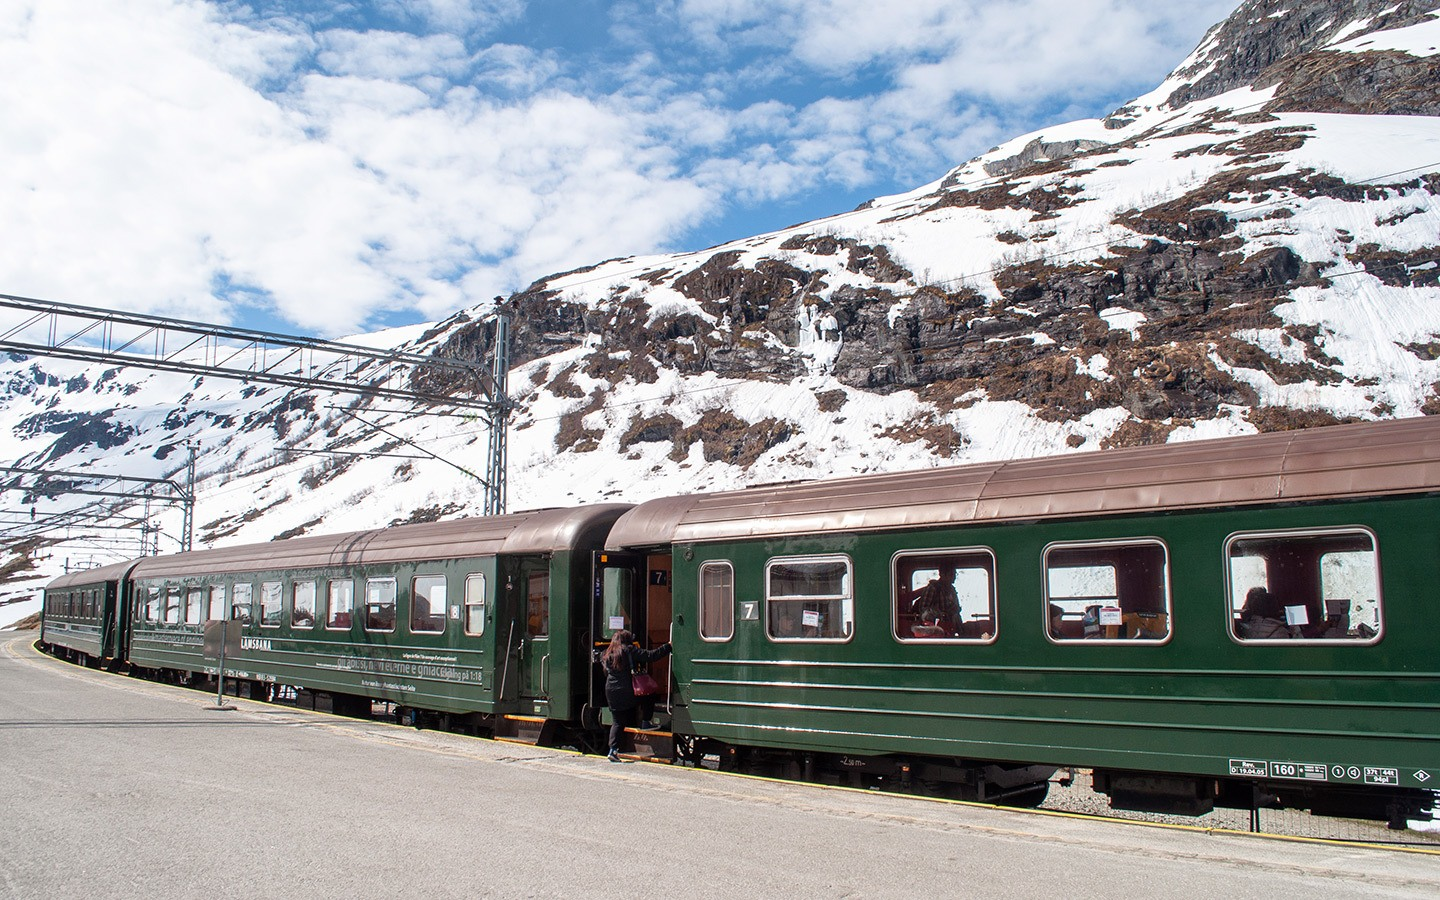 The Flamsbana scenic train at Myrdal station